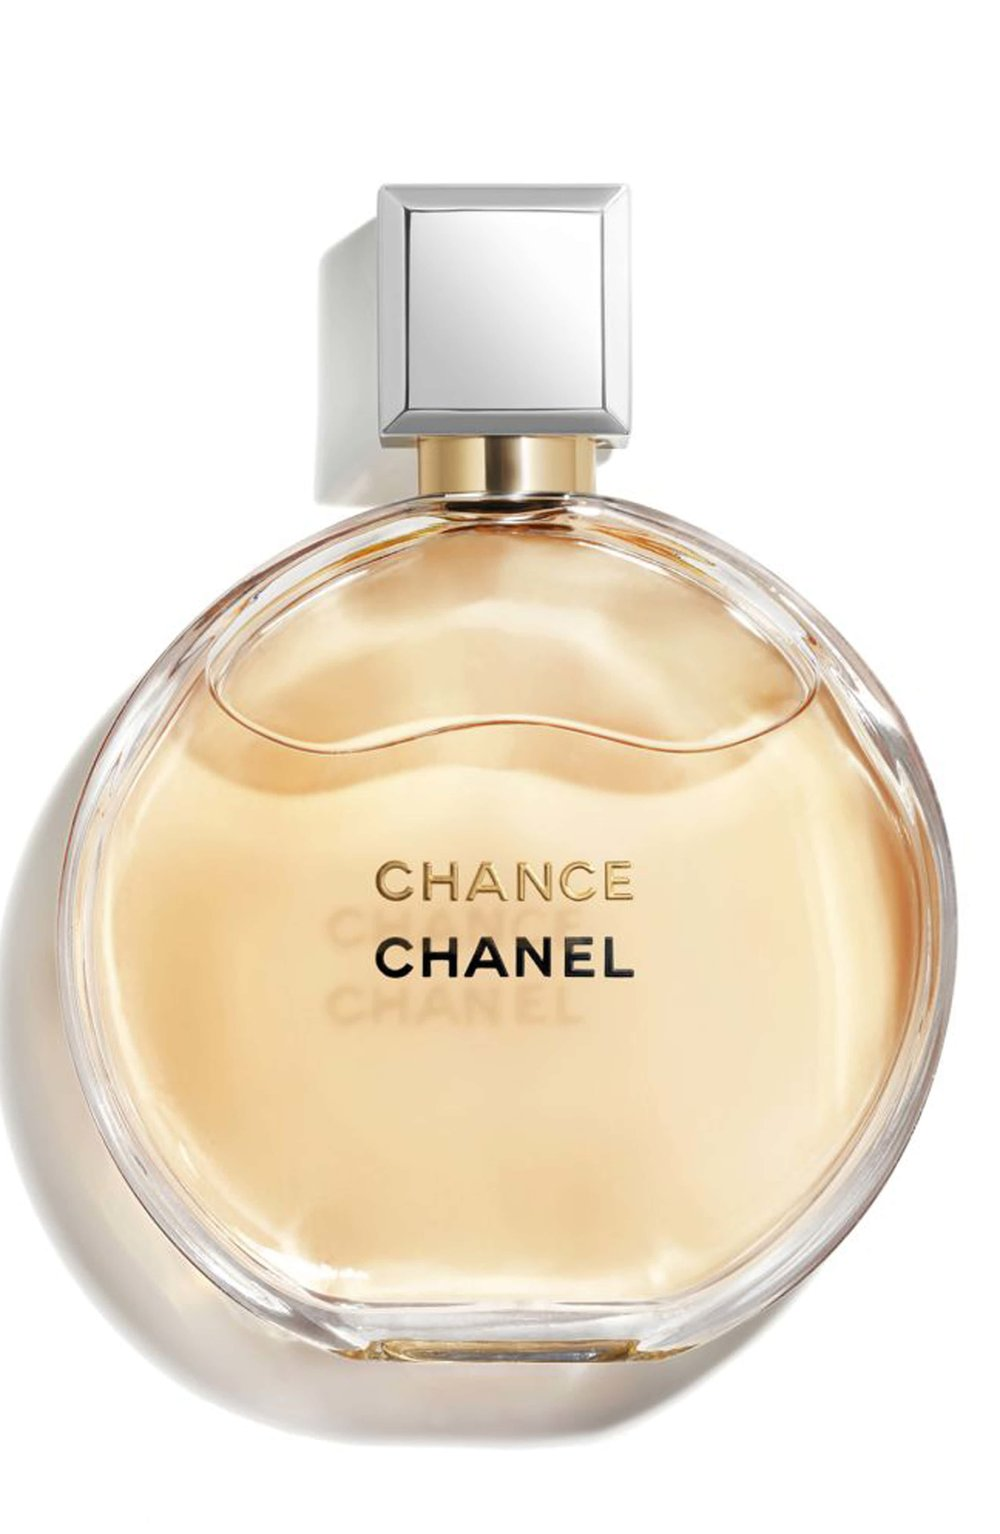 Chanel chance parfume - Take a CHANCE on this perfume… HA! Okay but seriously this is my favorite perfume ever.